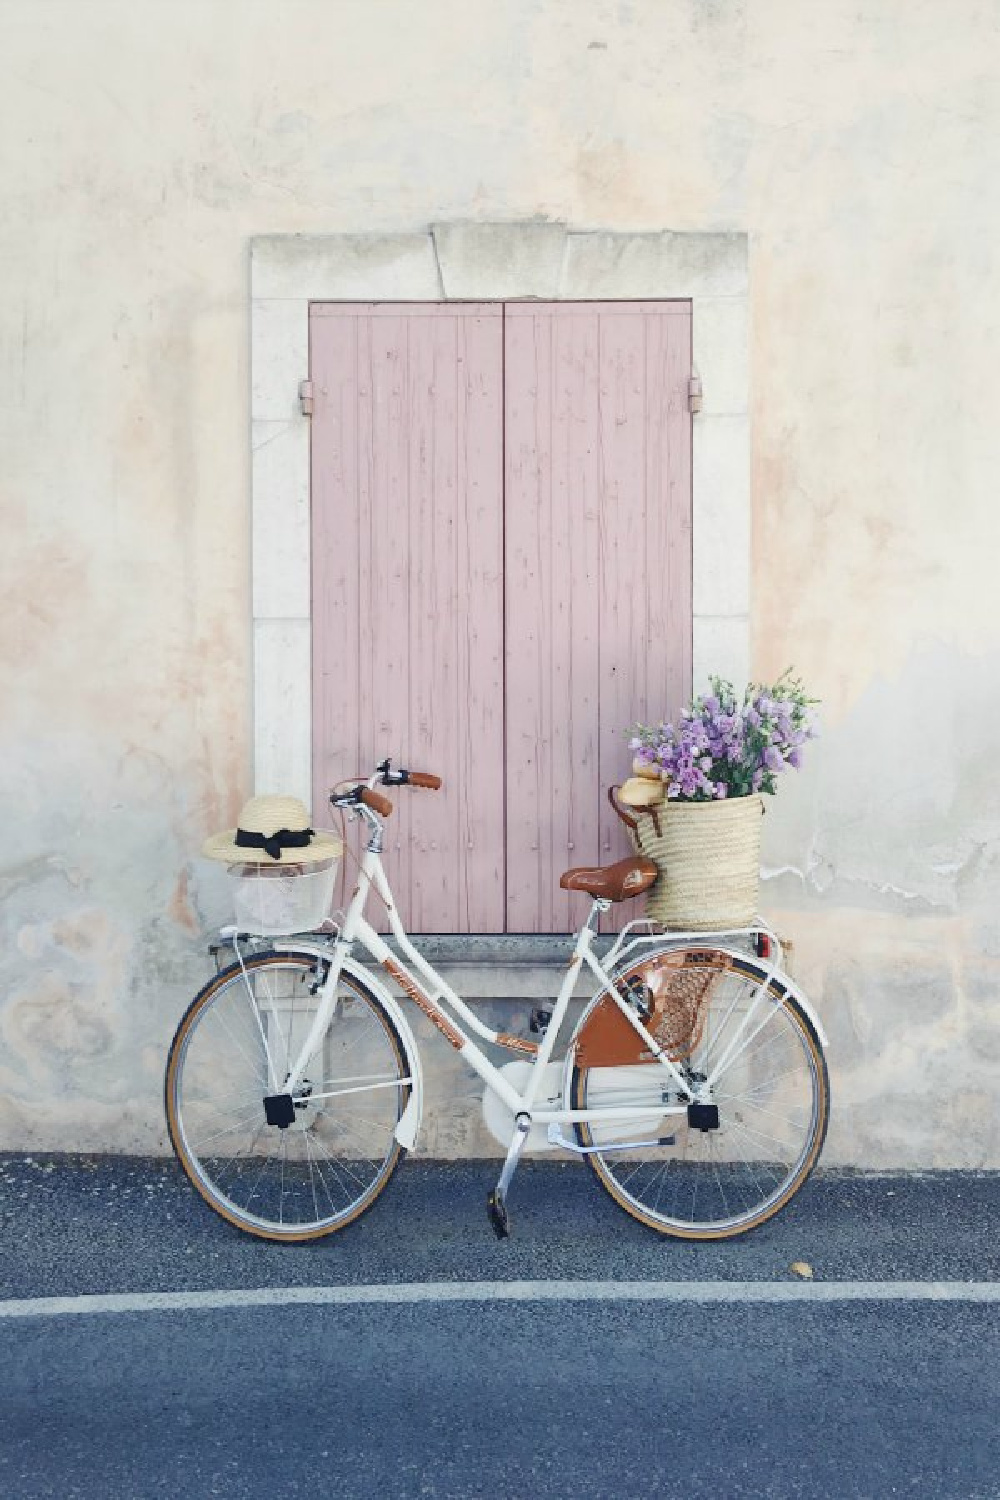 Dusty rose pink shutters on a stucco sided rustic French home with charming bicycle and French market basket (Vivi et Margot). #vivietmargot #bicycle #pink #frenchfarmhouse #frenchbasket #marketbasket #romanticdecor